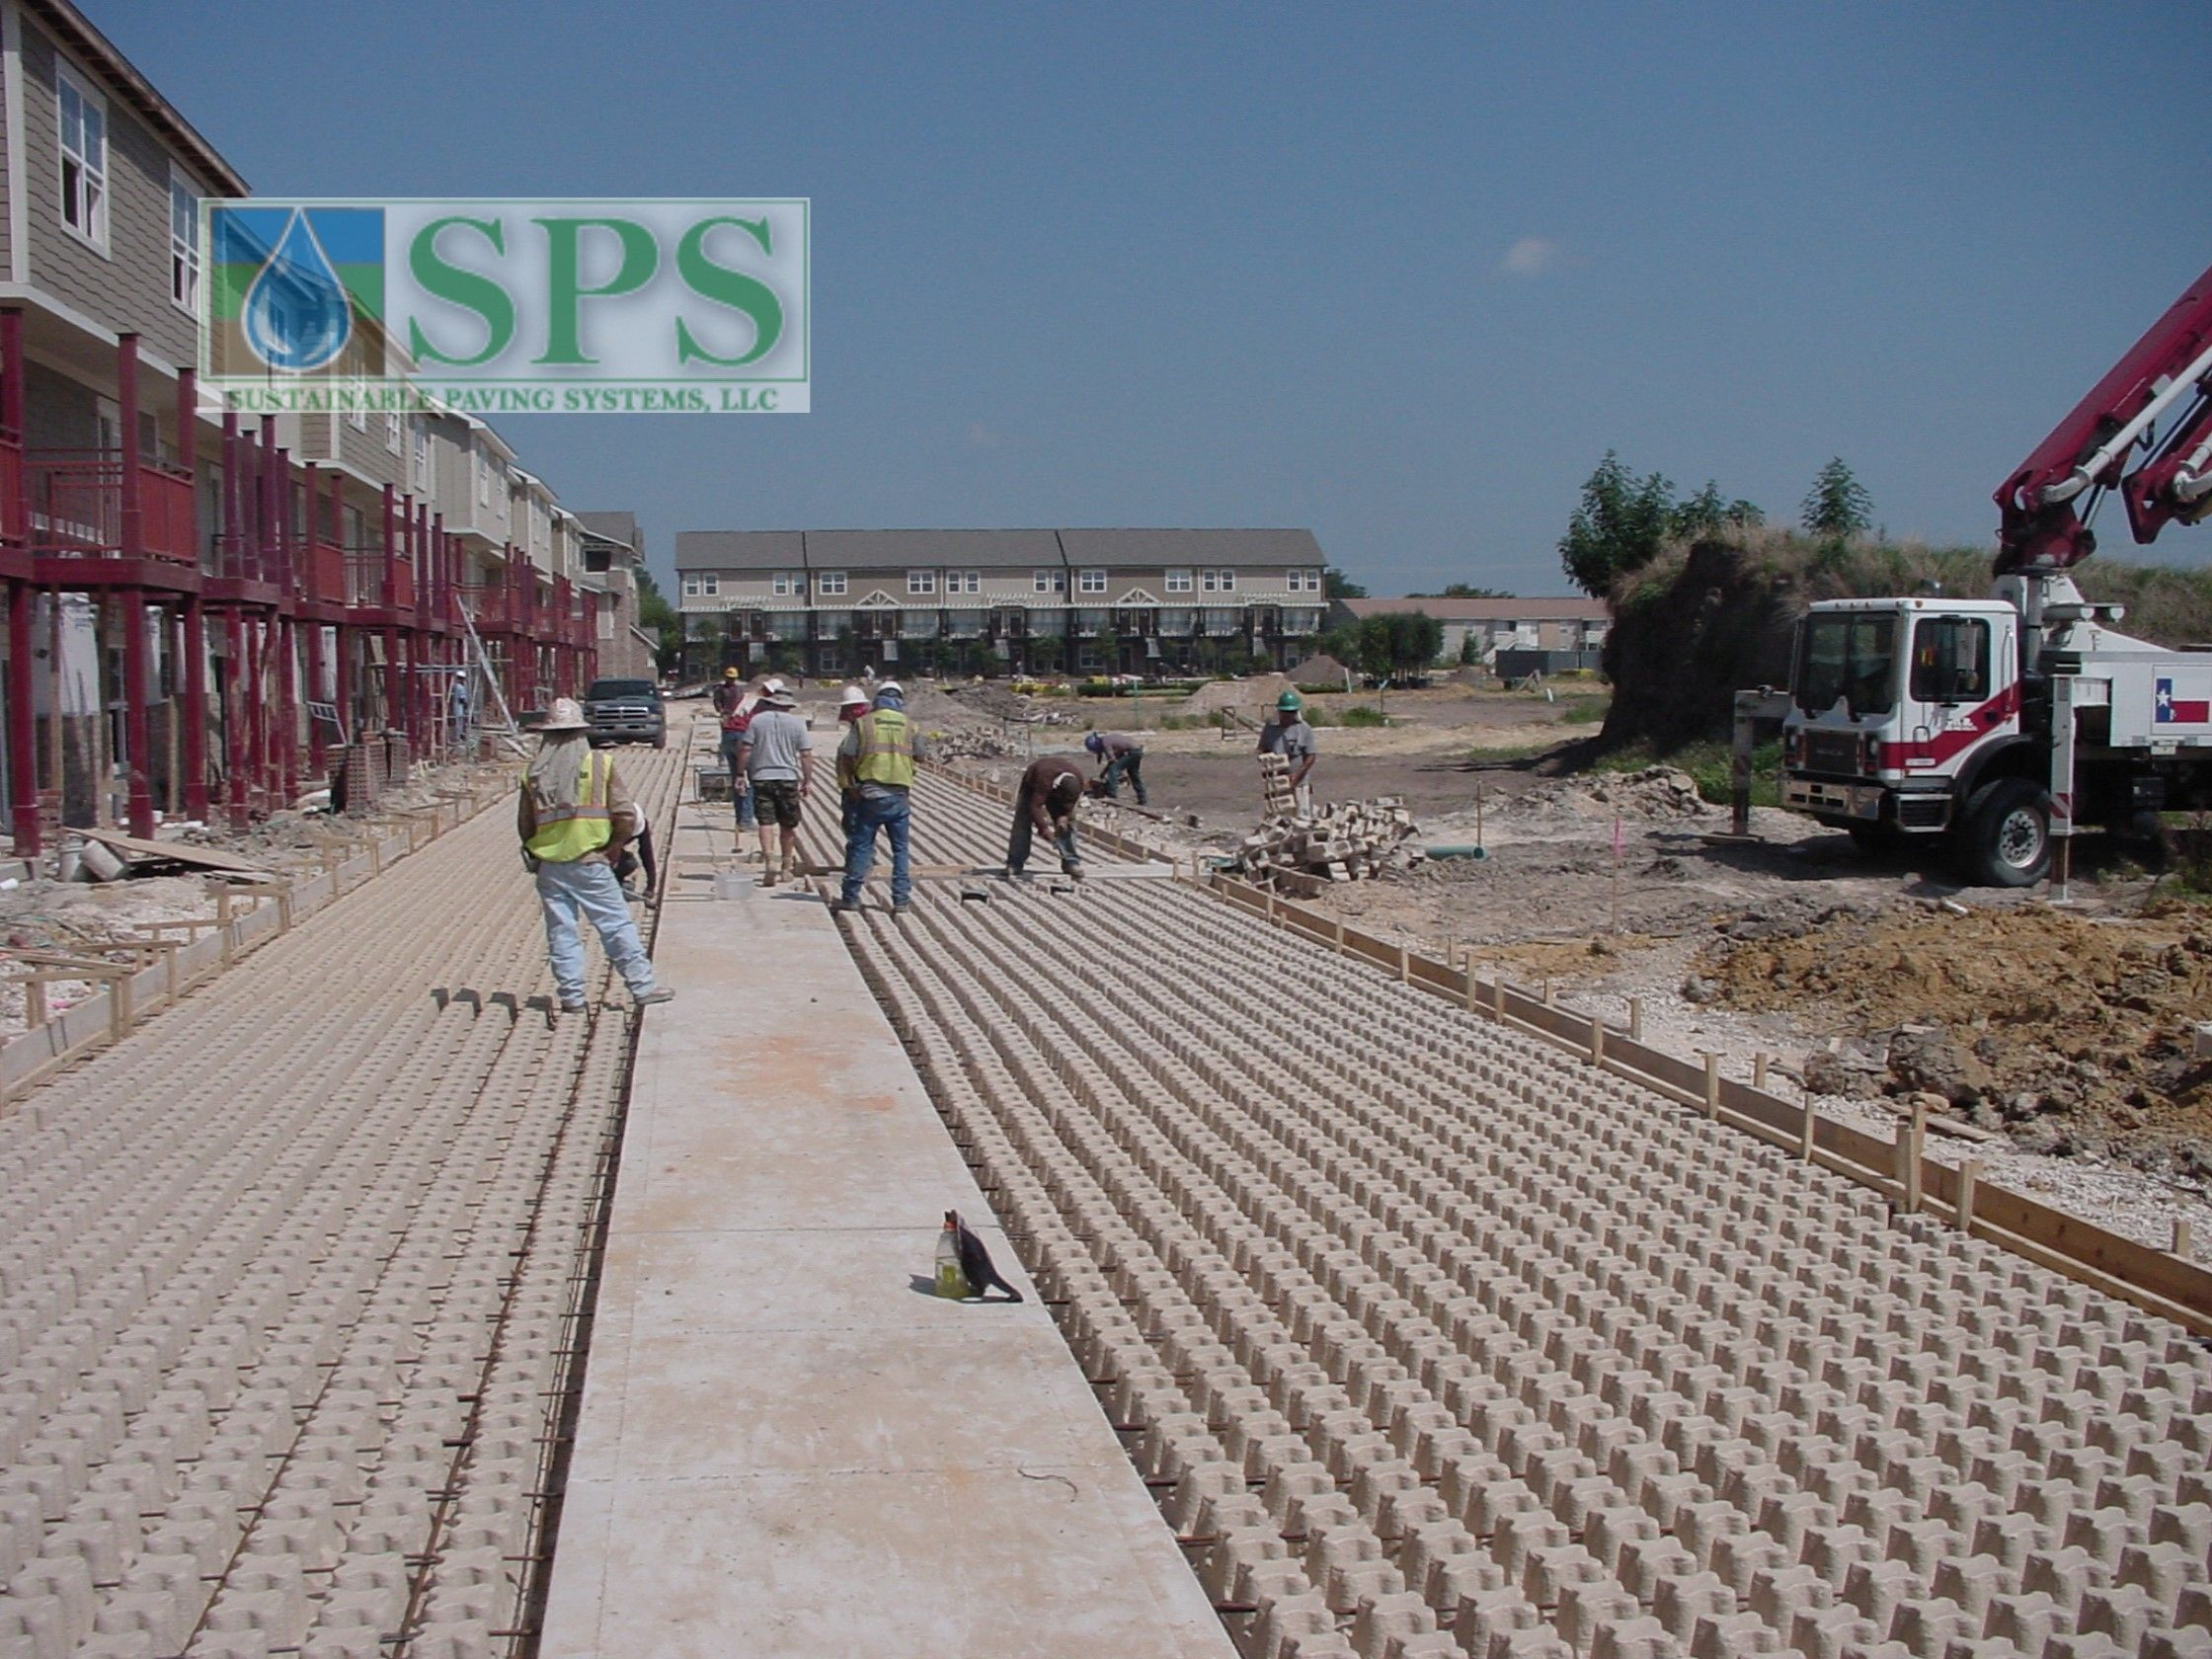 Grasscrete Concealed System At Woodlands At College Station View Of Firelane Pulp Former Install_1